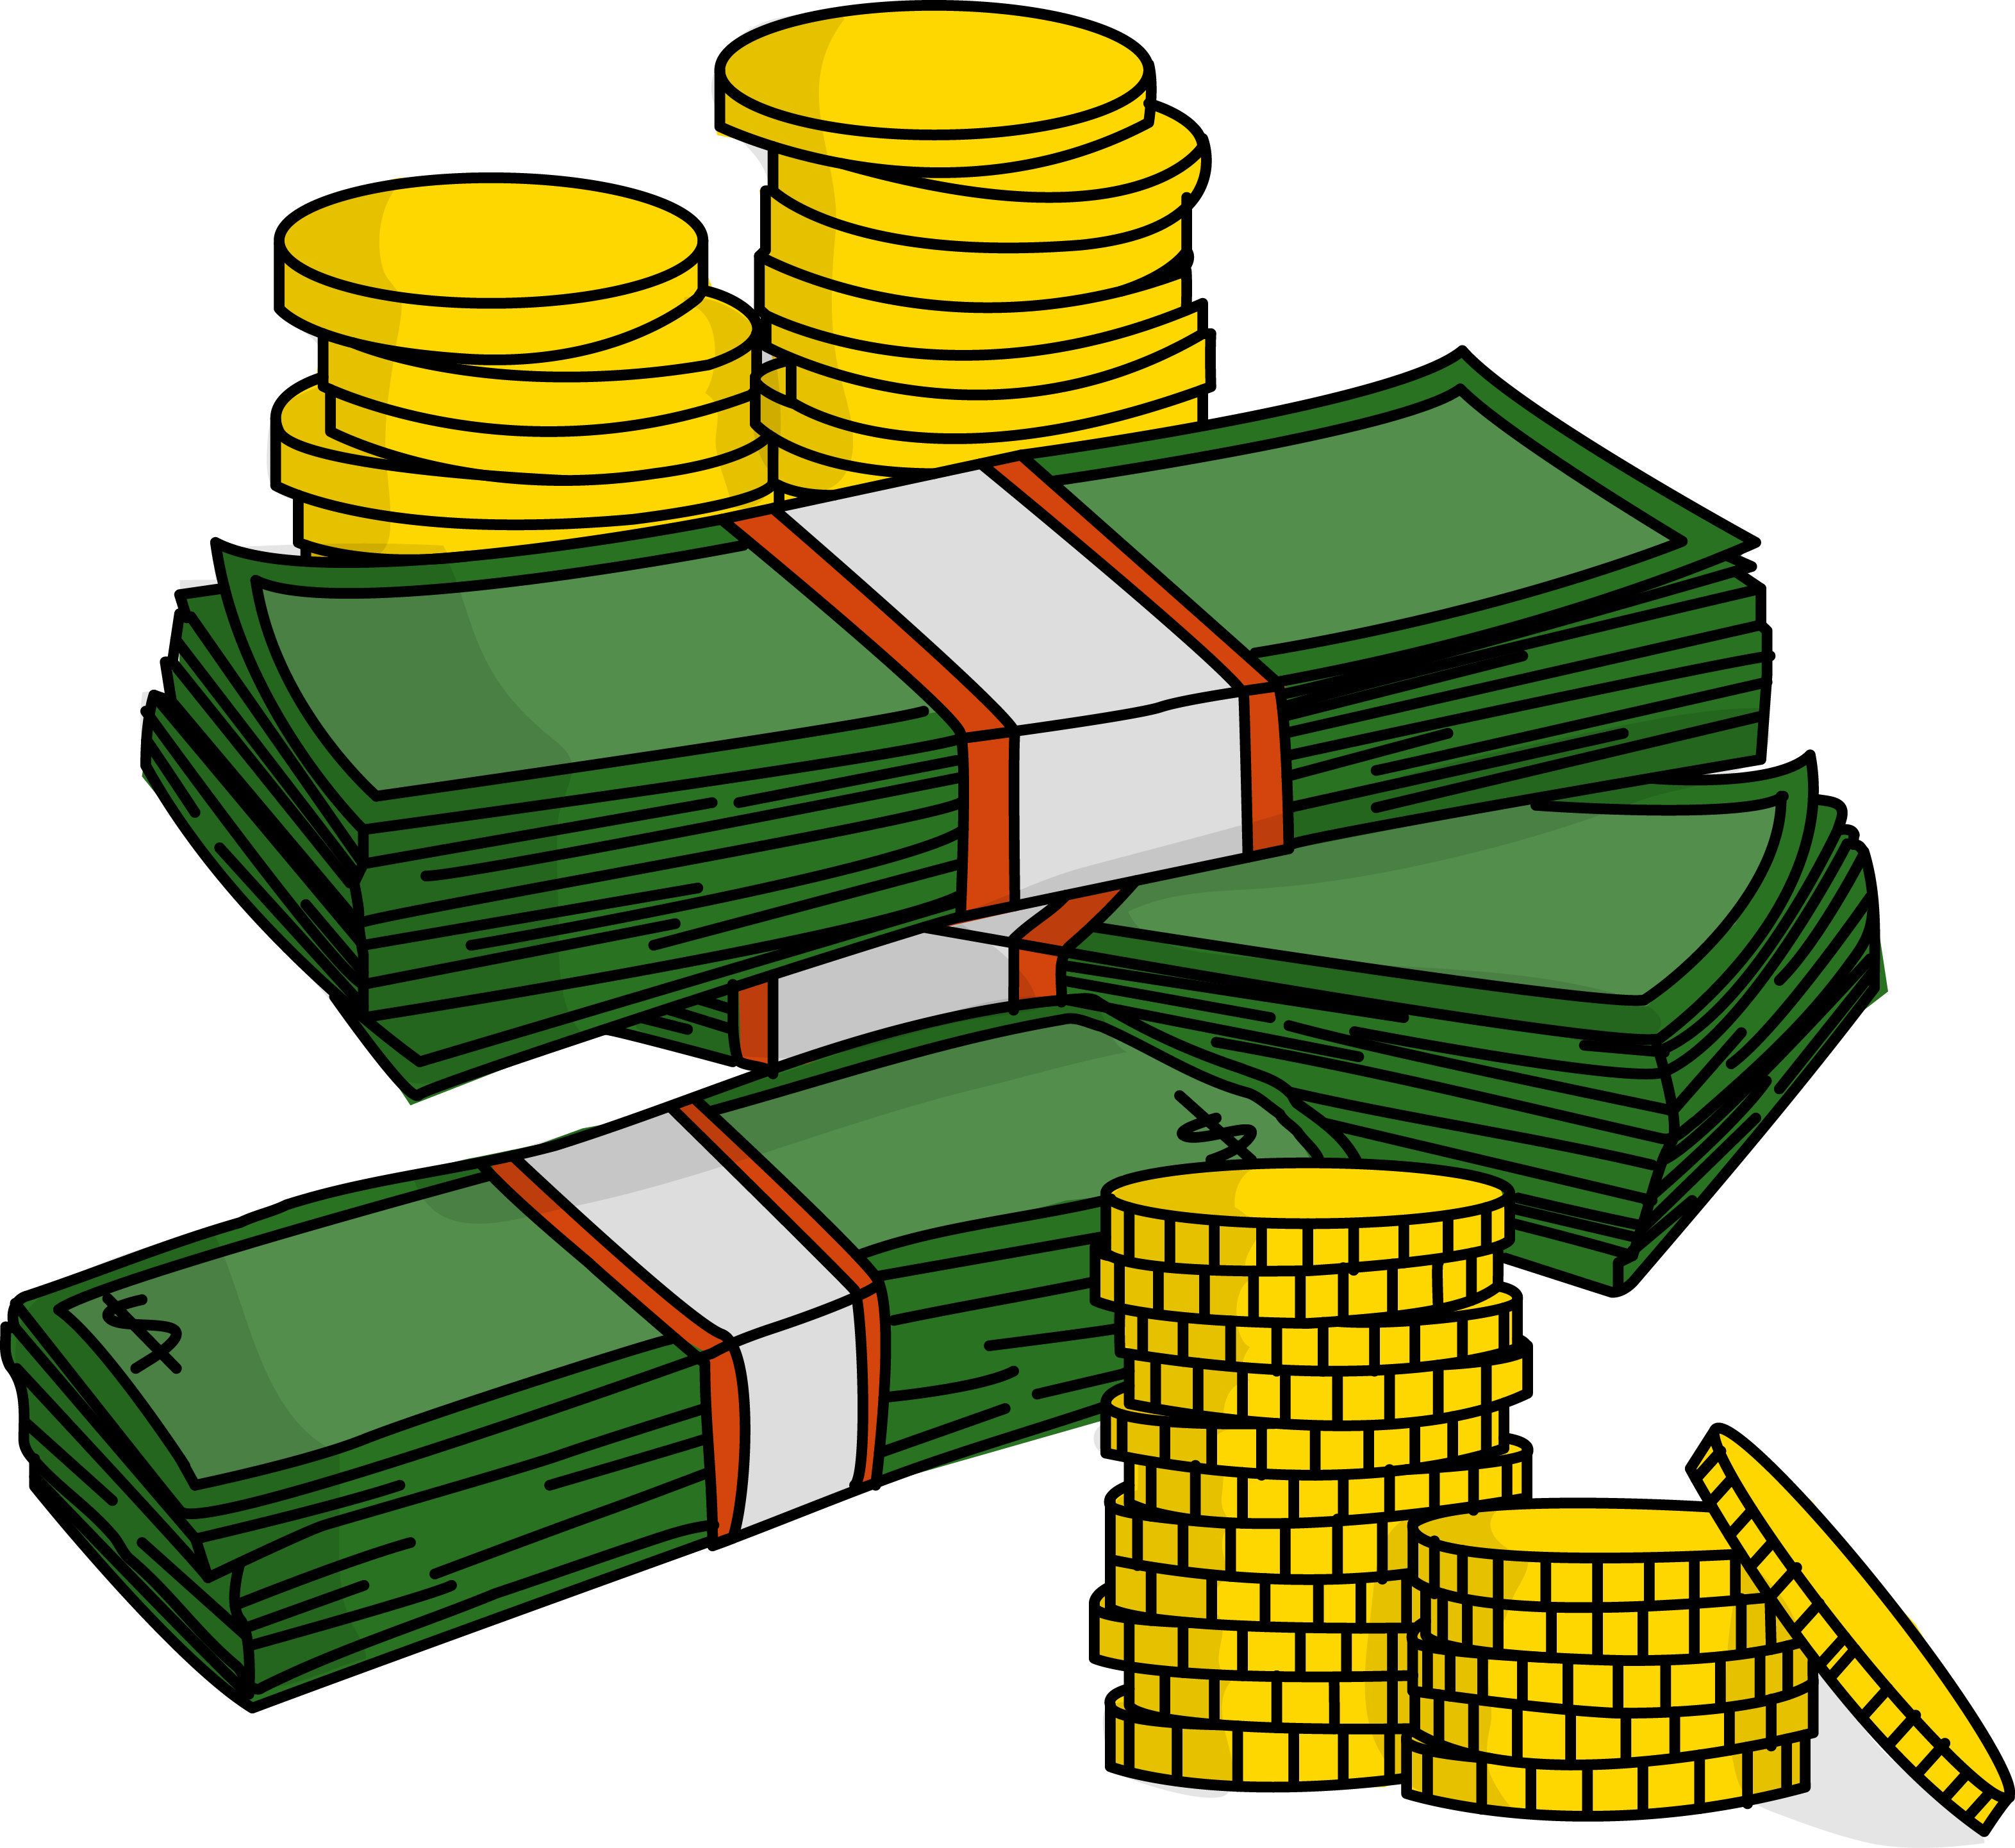 Free Stacks Of Money With Coins High Res-Free Stacks Of Money With Coins High Resolution Clip Art | All ..-9